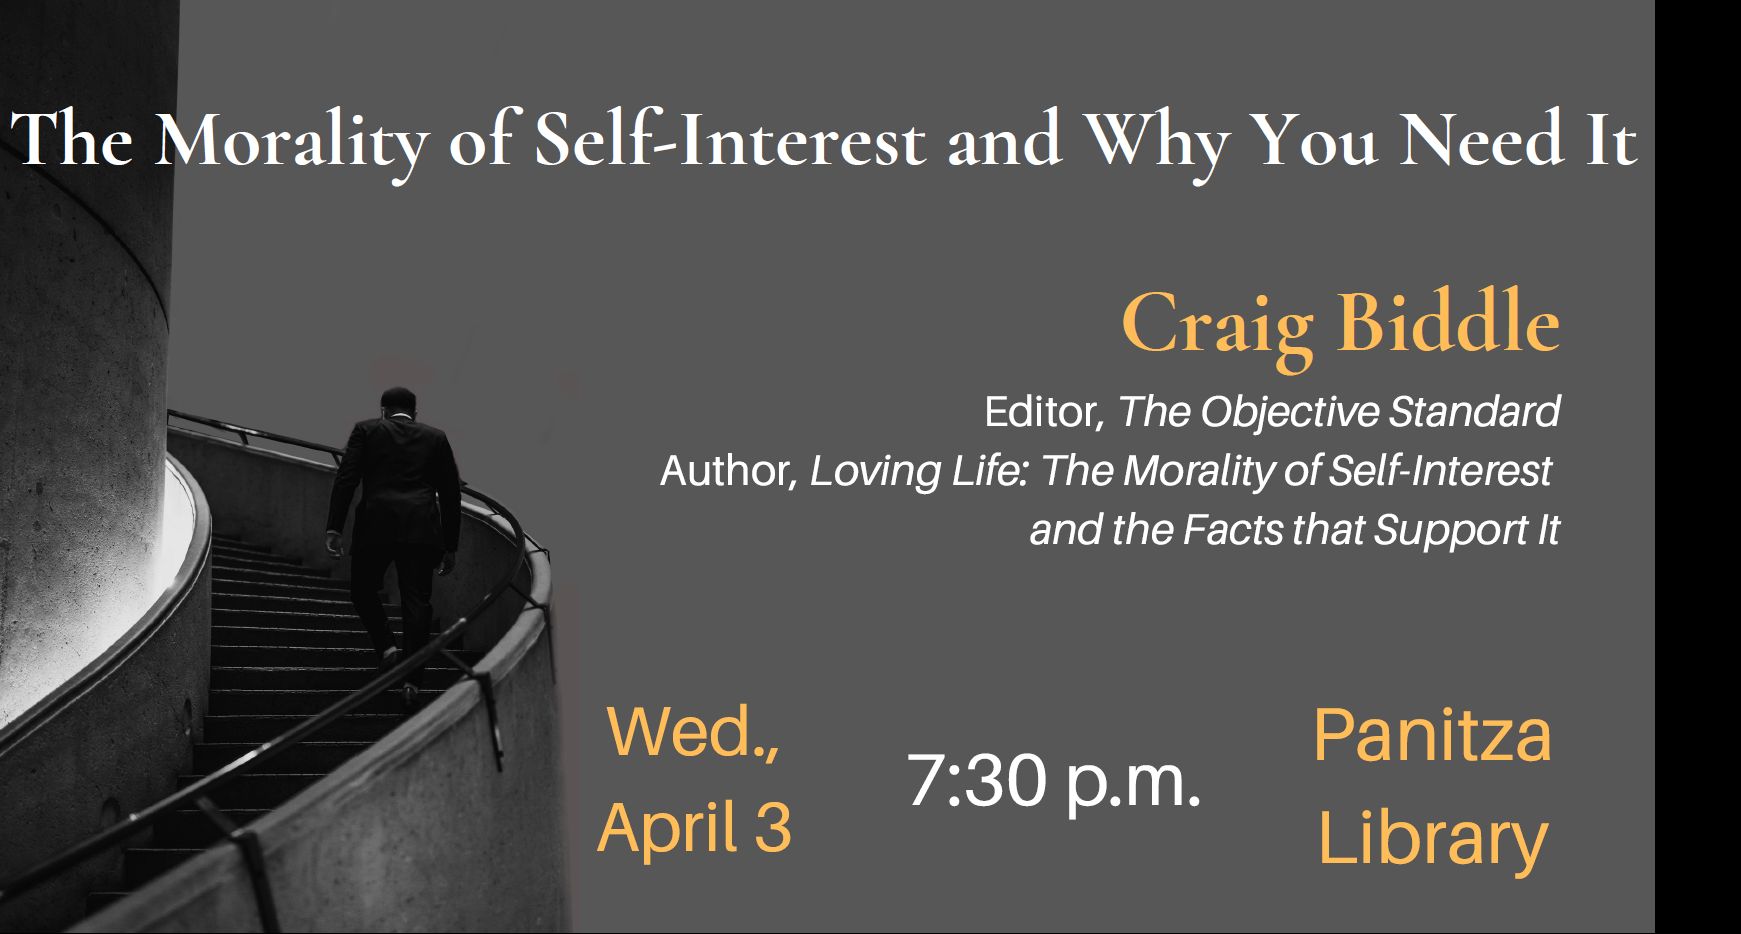 Lecture: The Morality of Self-Interest and the Facts that Support It by Craig Biddle, Editor of The Objective Standard and Author of Loving Life